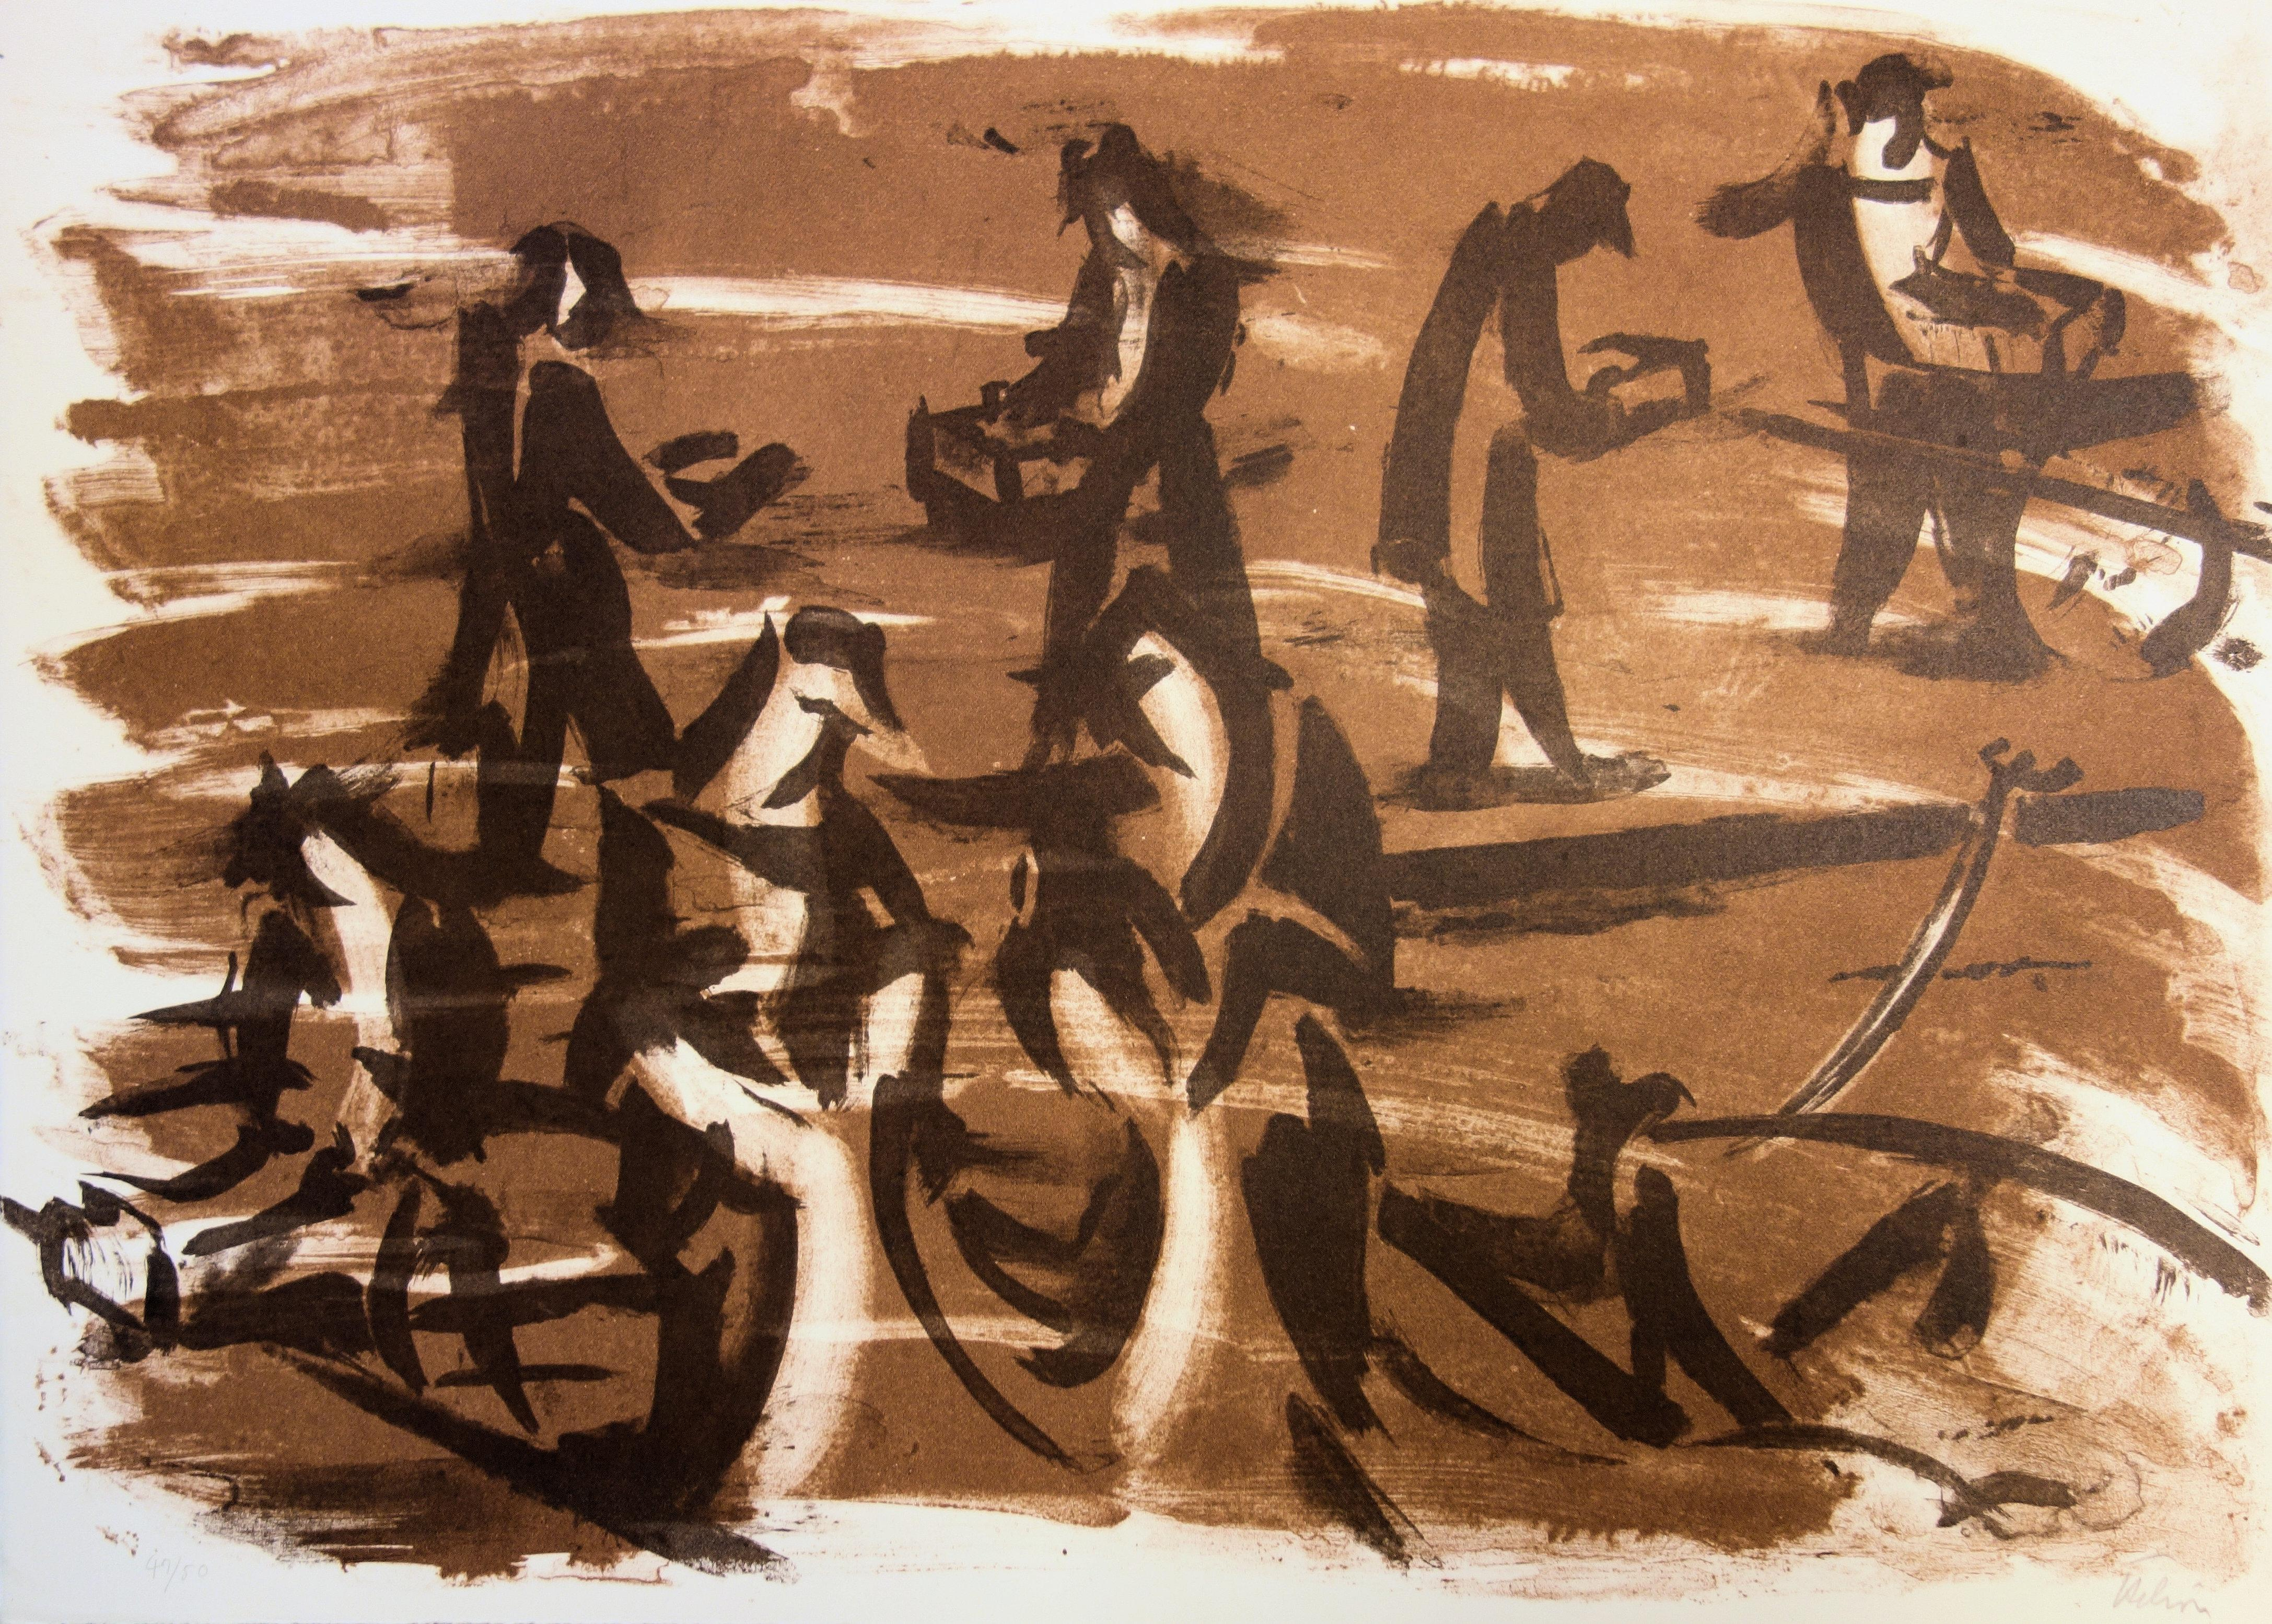 Workers at the Harbor - Original handsigned lithograph - 50 copies